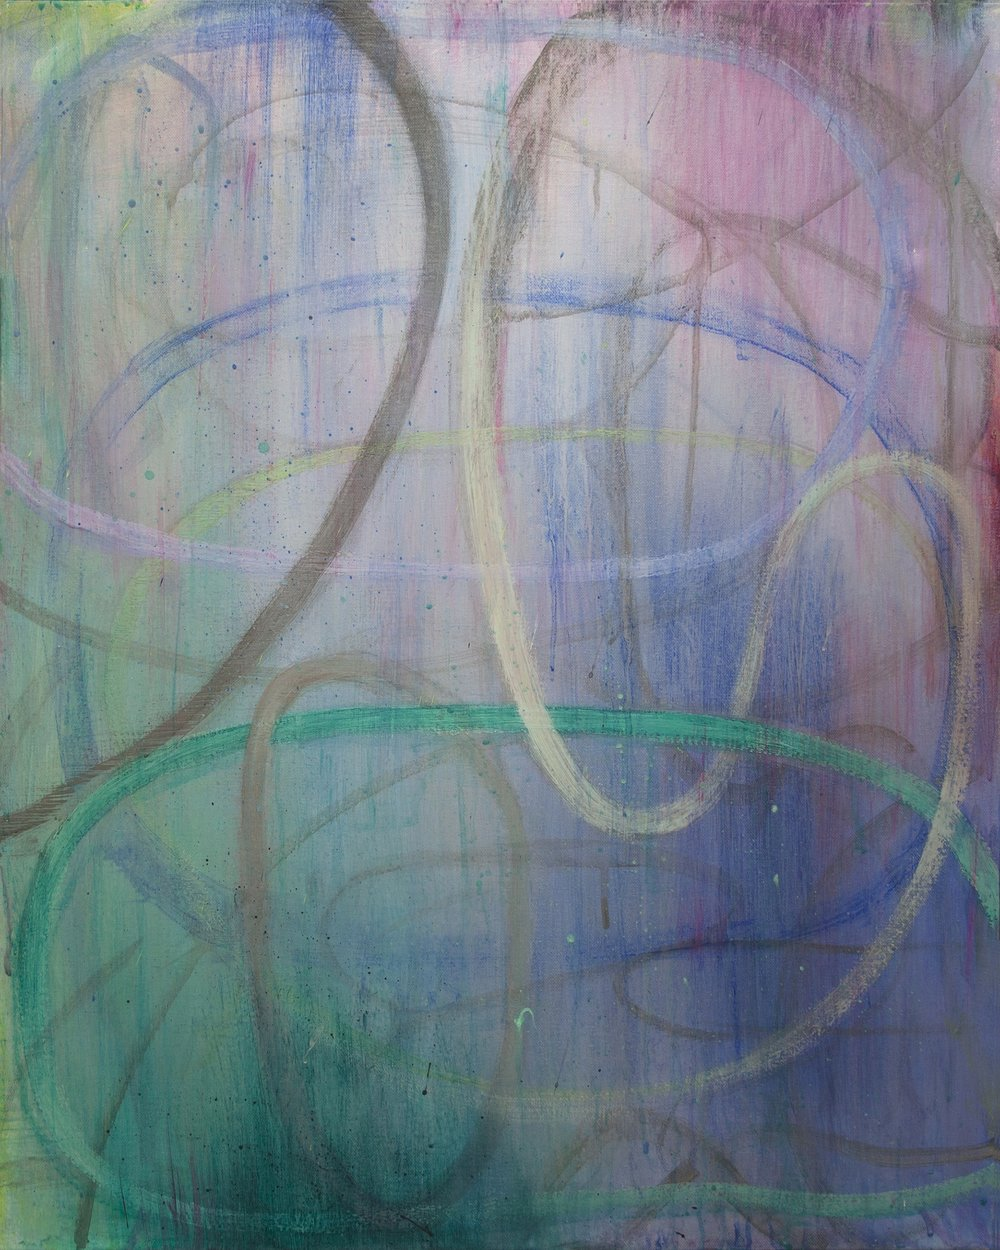 """Olympiad"", 30"" x 24"", mixed media on canvas"